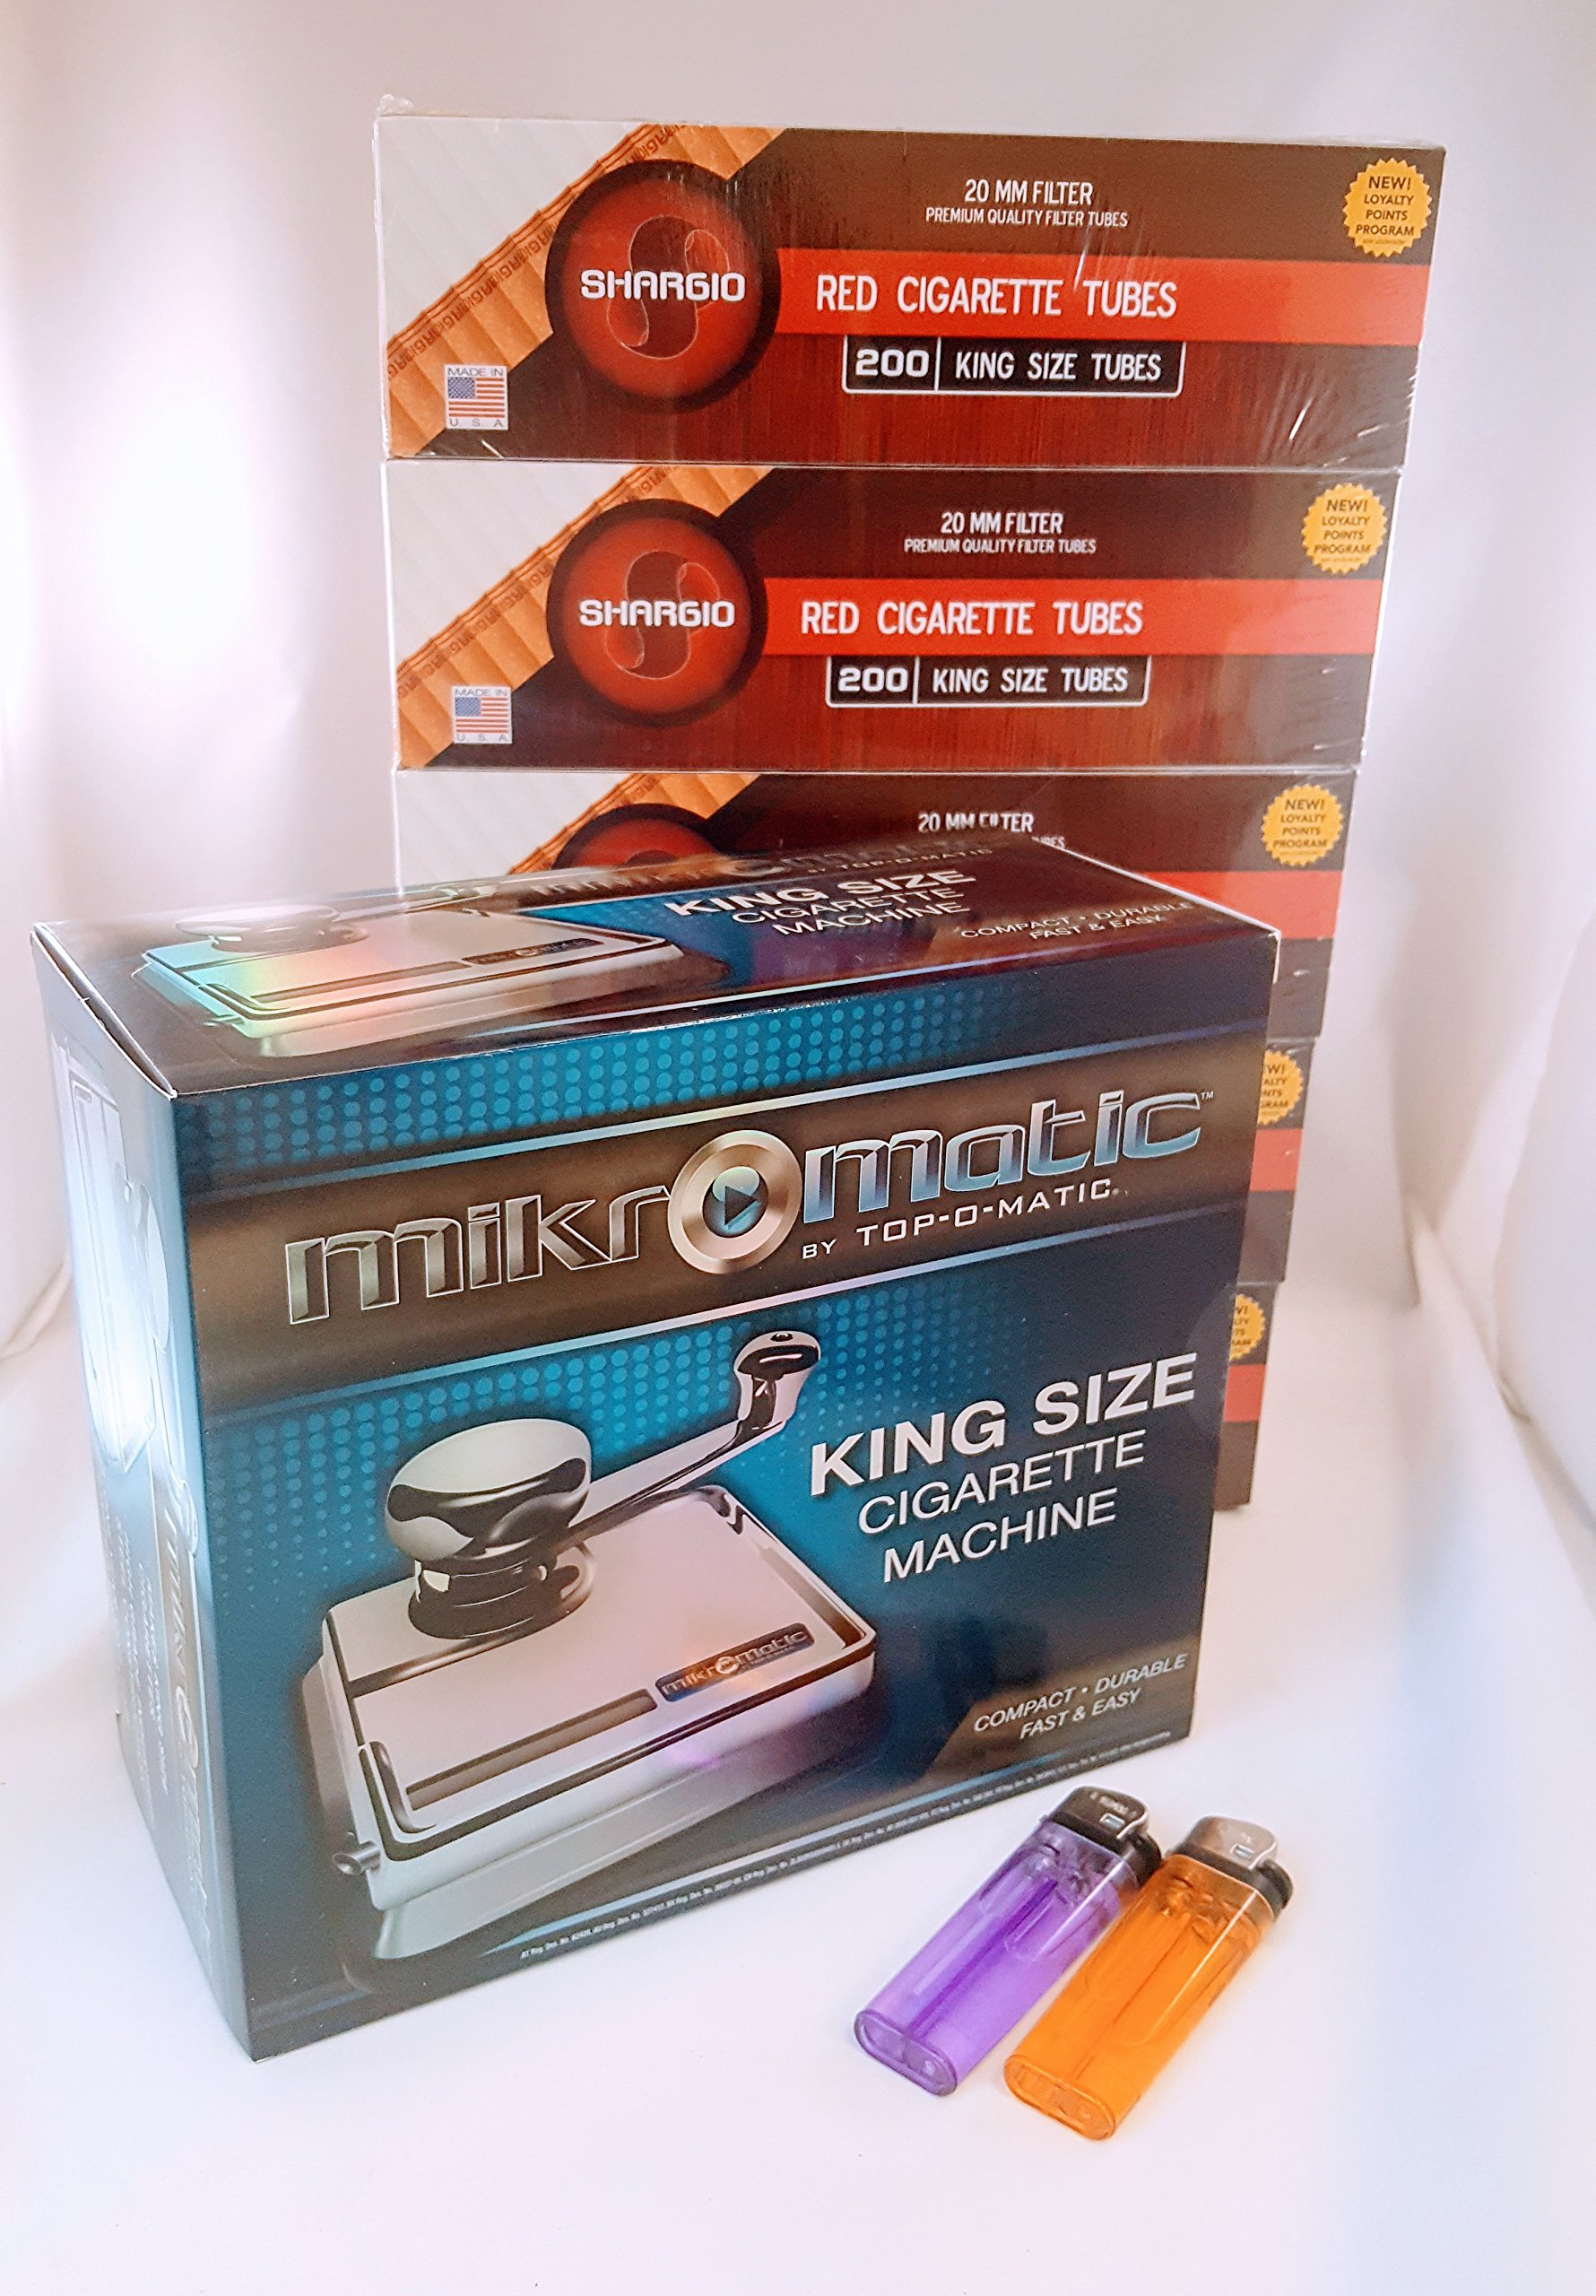 Mikromatic By Top-o-matic King Size Cigarette Machine+ FREE Shargio tubes & liighters by TOP